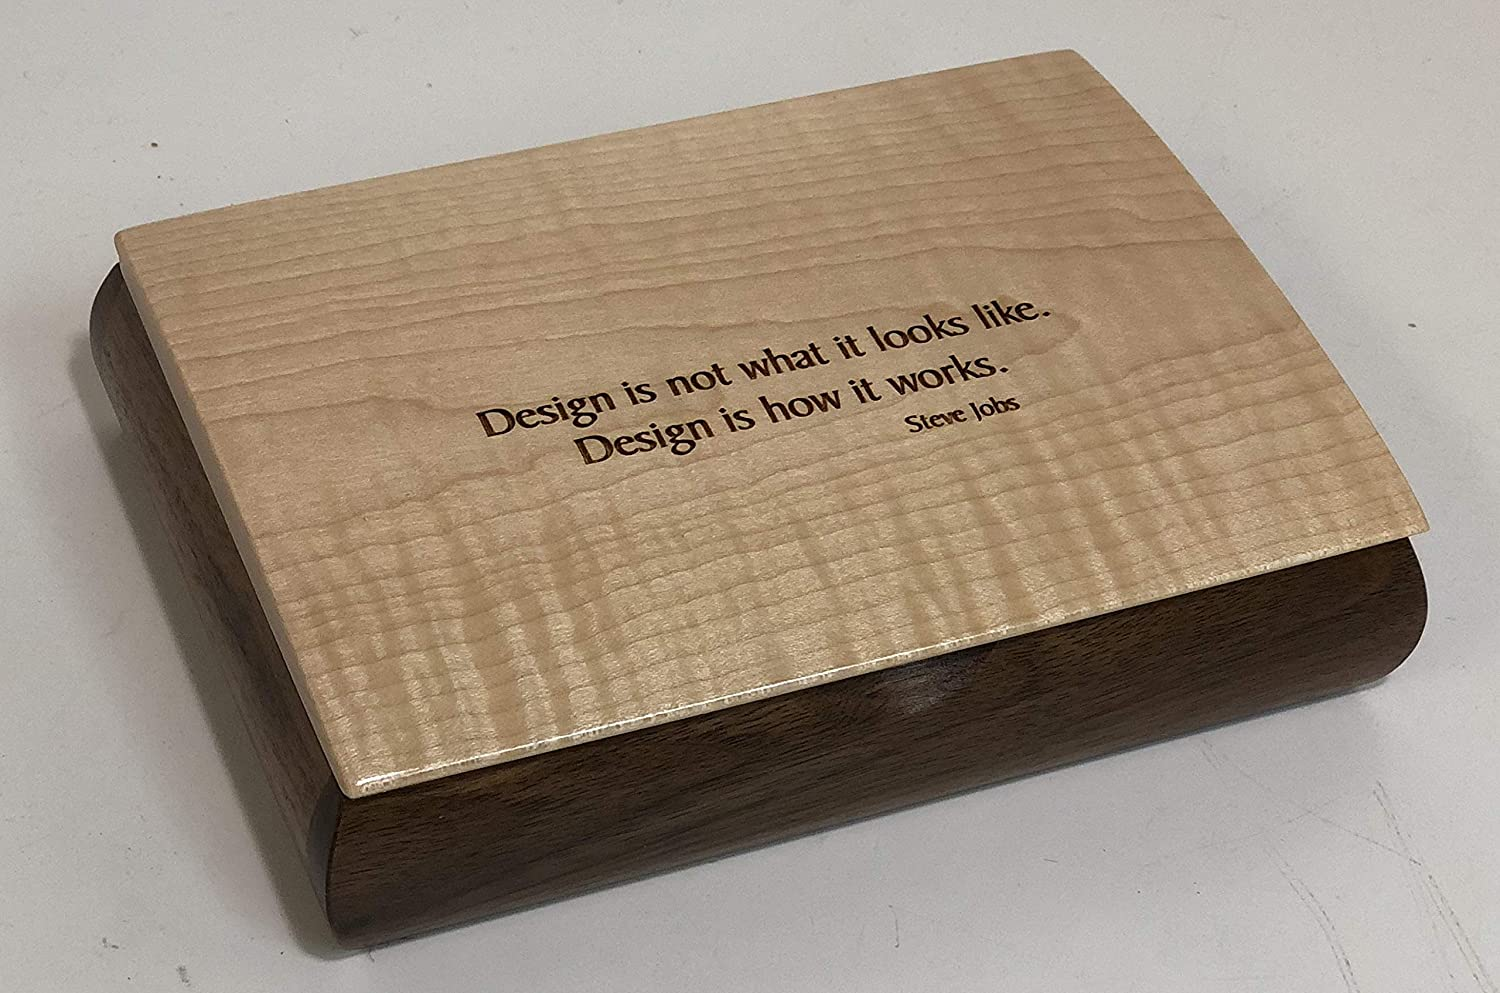 Tranquility Box